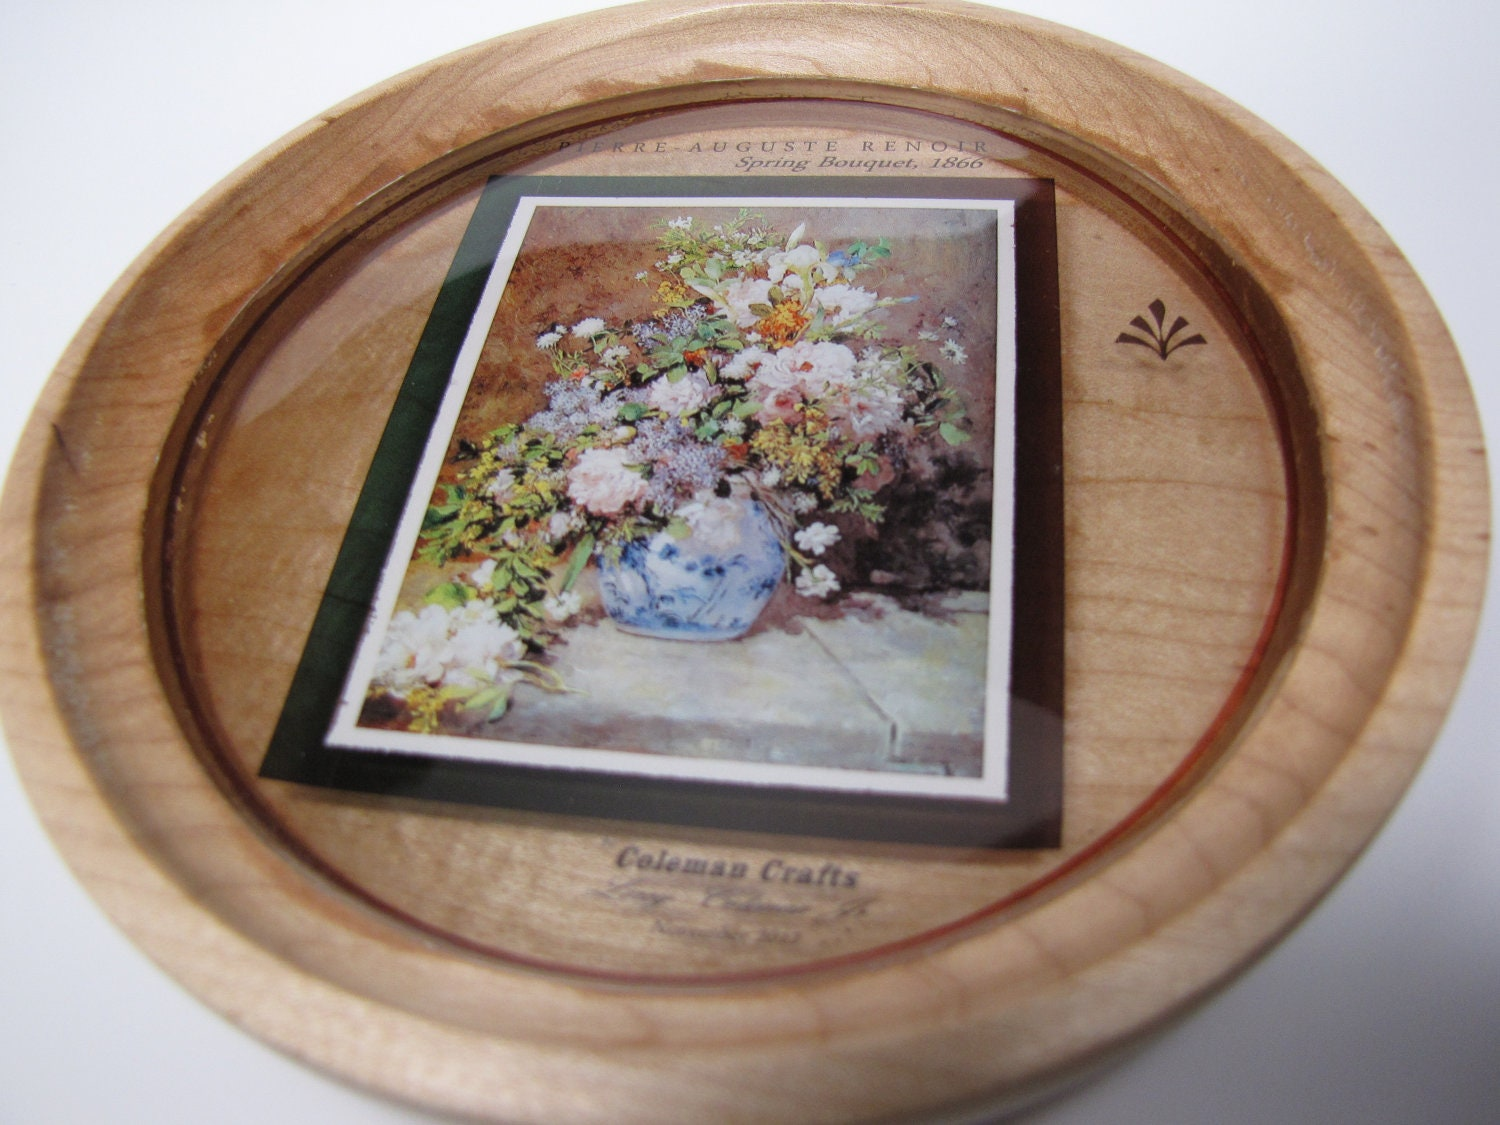 Hard Maple Wooden Bowl with Digital Image of Painting